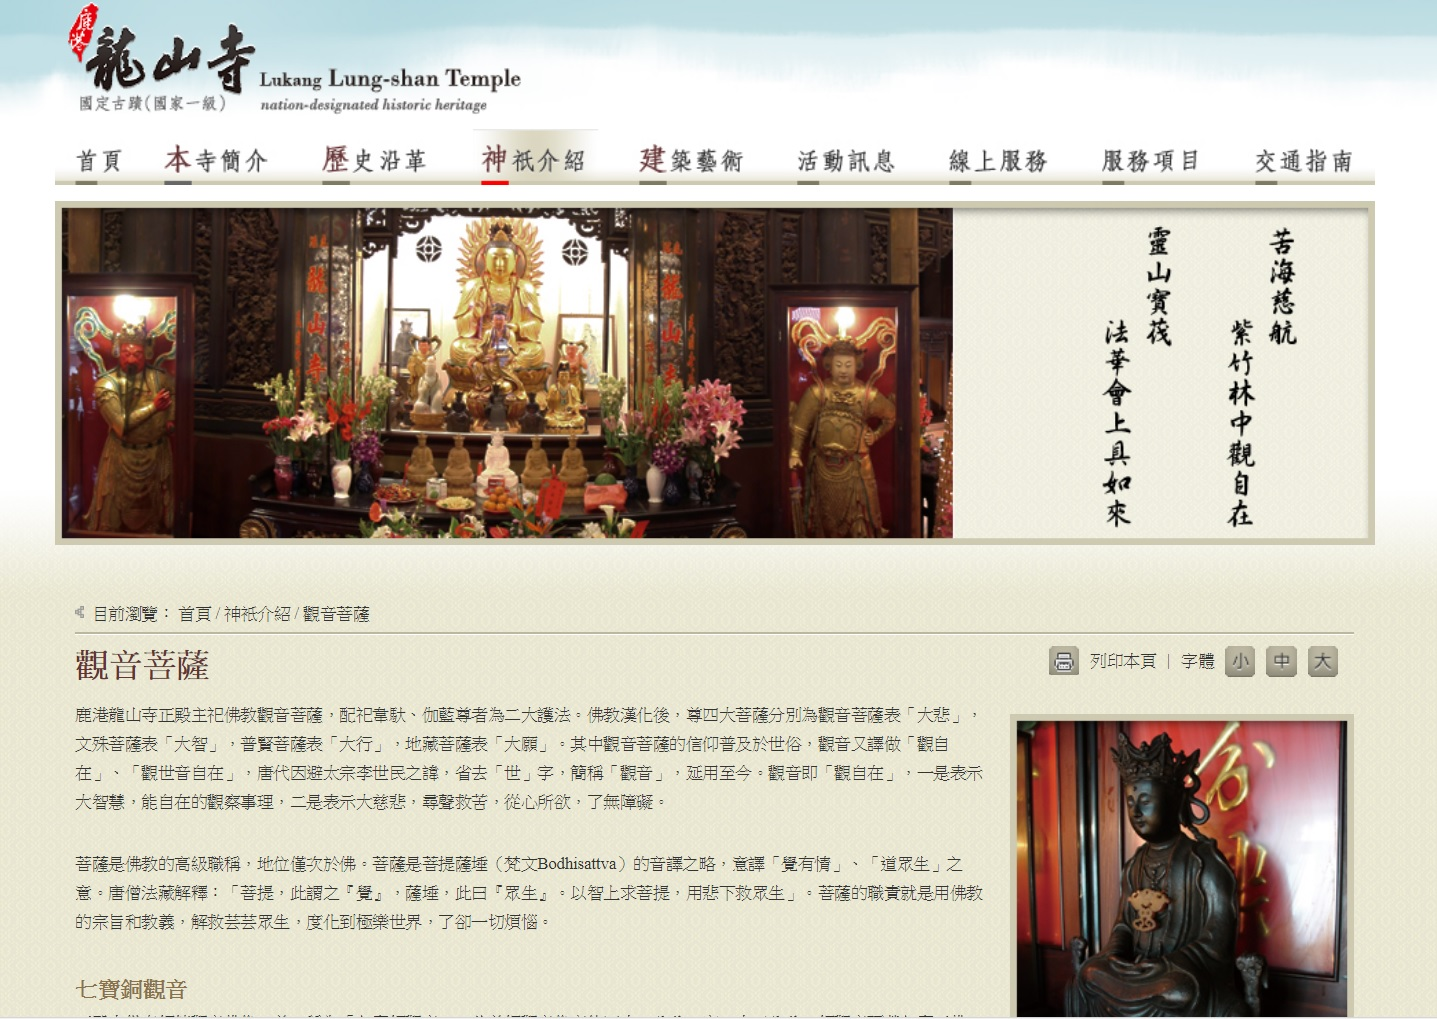 Site officiel du temple Lung-shan de Lukang